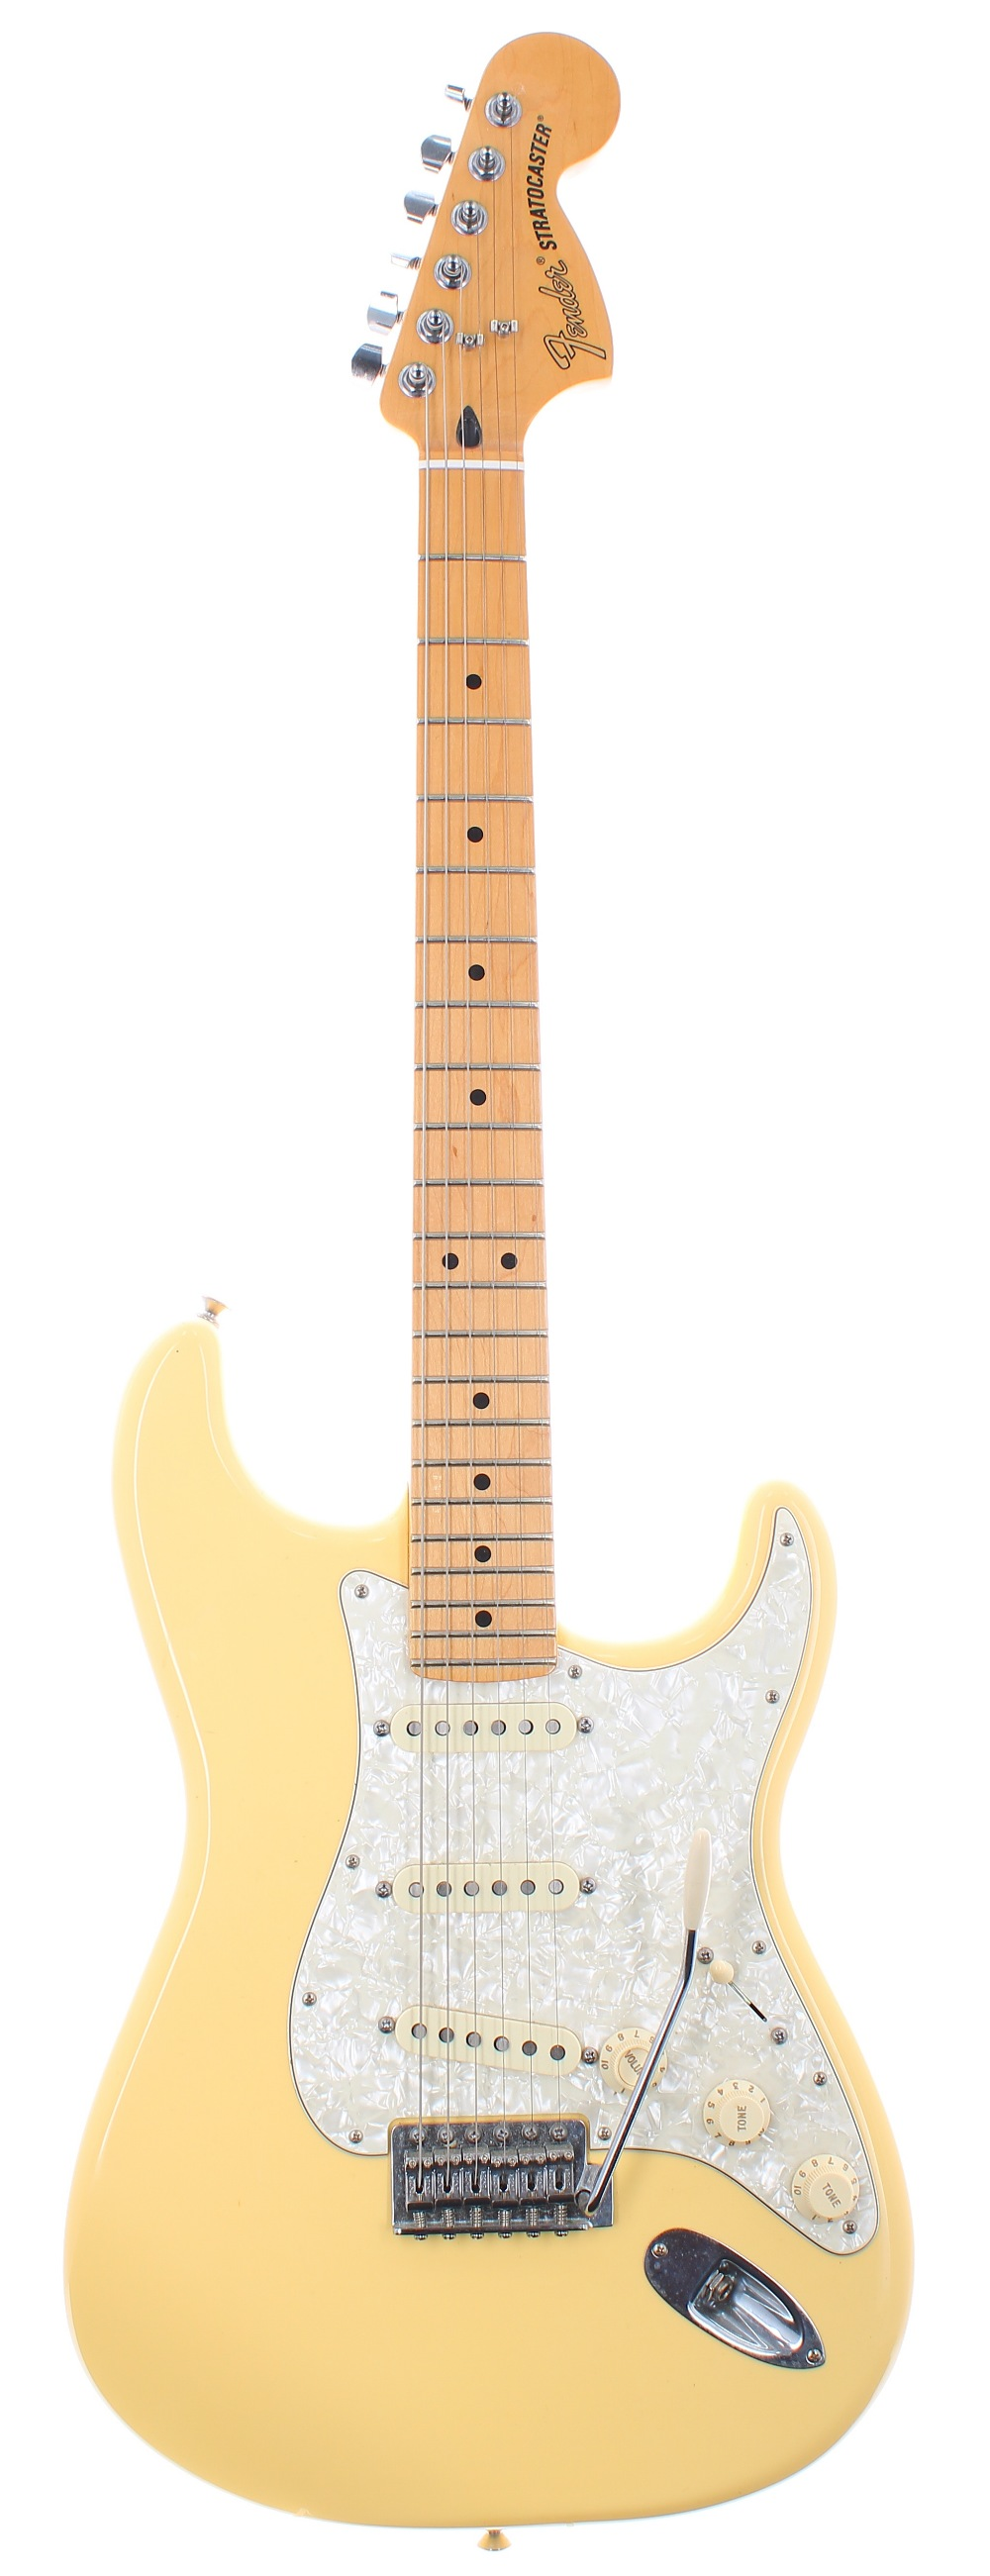 2014 Fender Deluxe Roadhouse Stratocaster electric guitar, made in Mexico, ser. no. MX14xxxxx7;